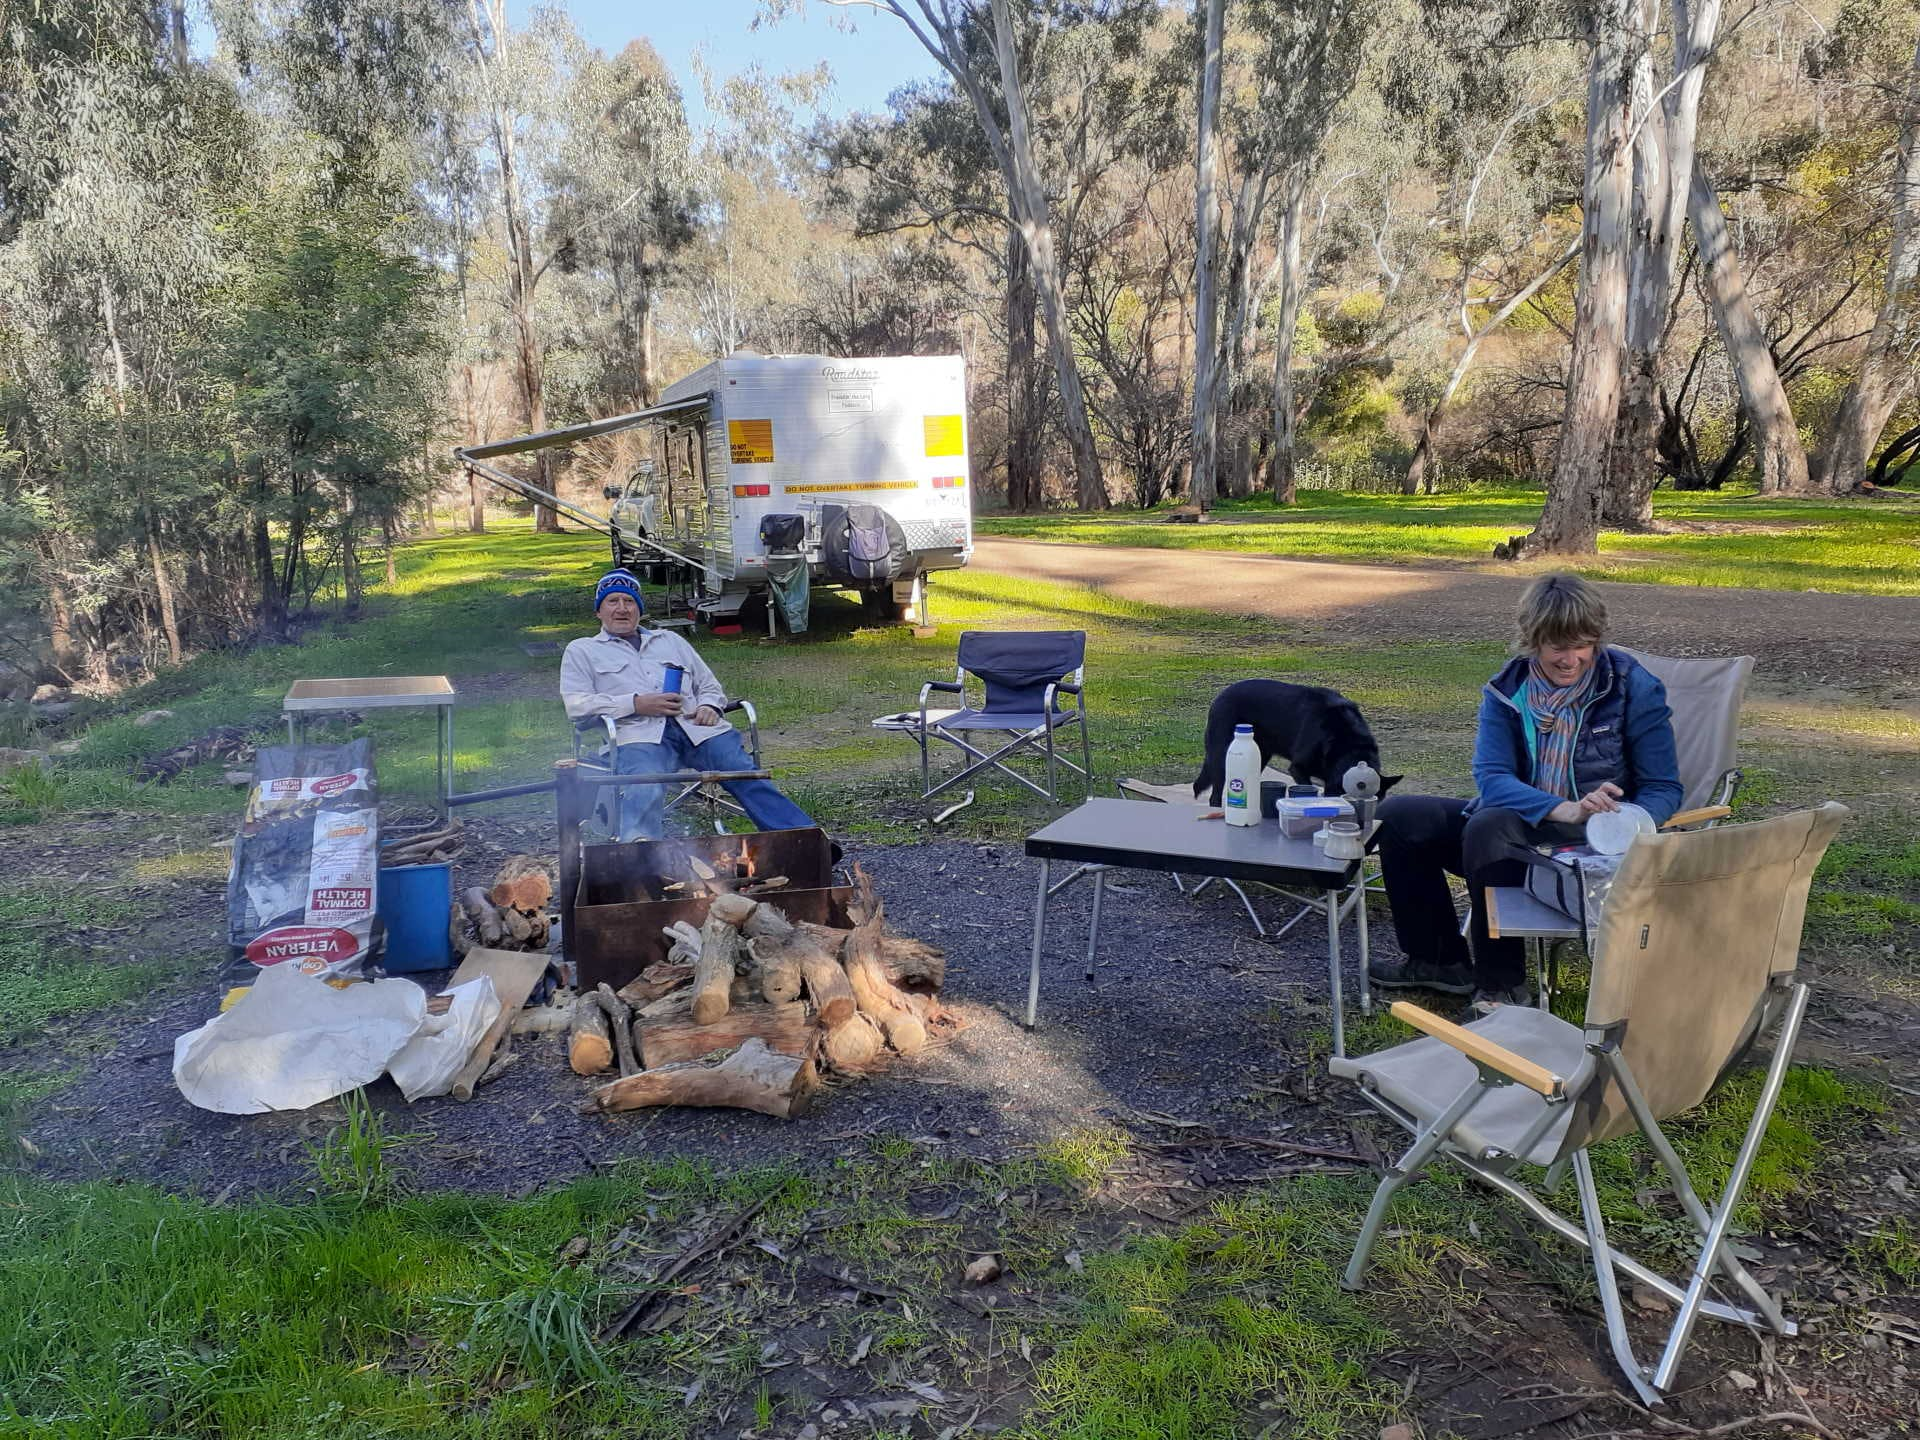 More Victorians will be able to enjoy campsites like Edi Cutting Reserve in the beautiful King Valley, Victoria. Image courtesy Wilma Green